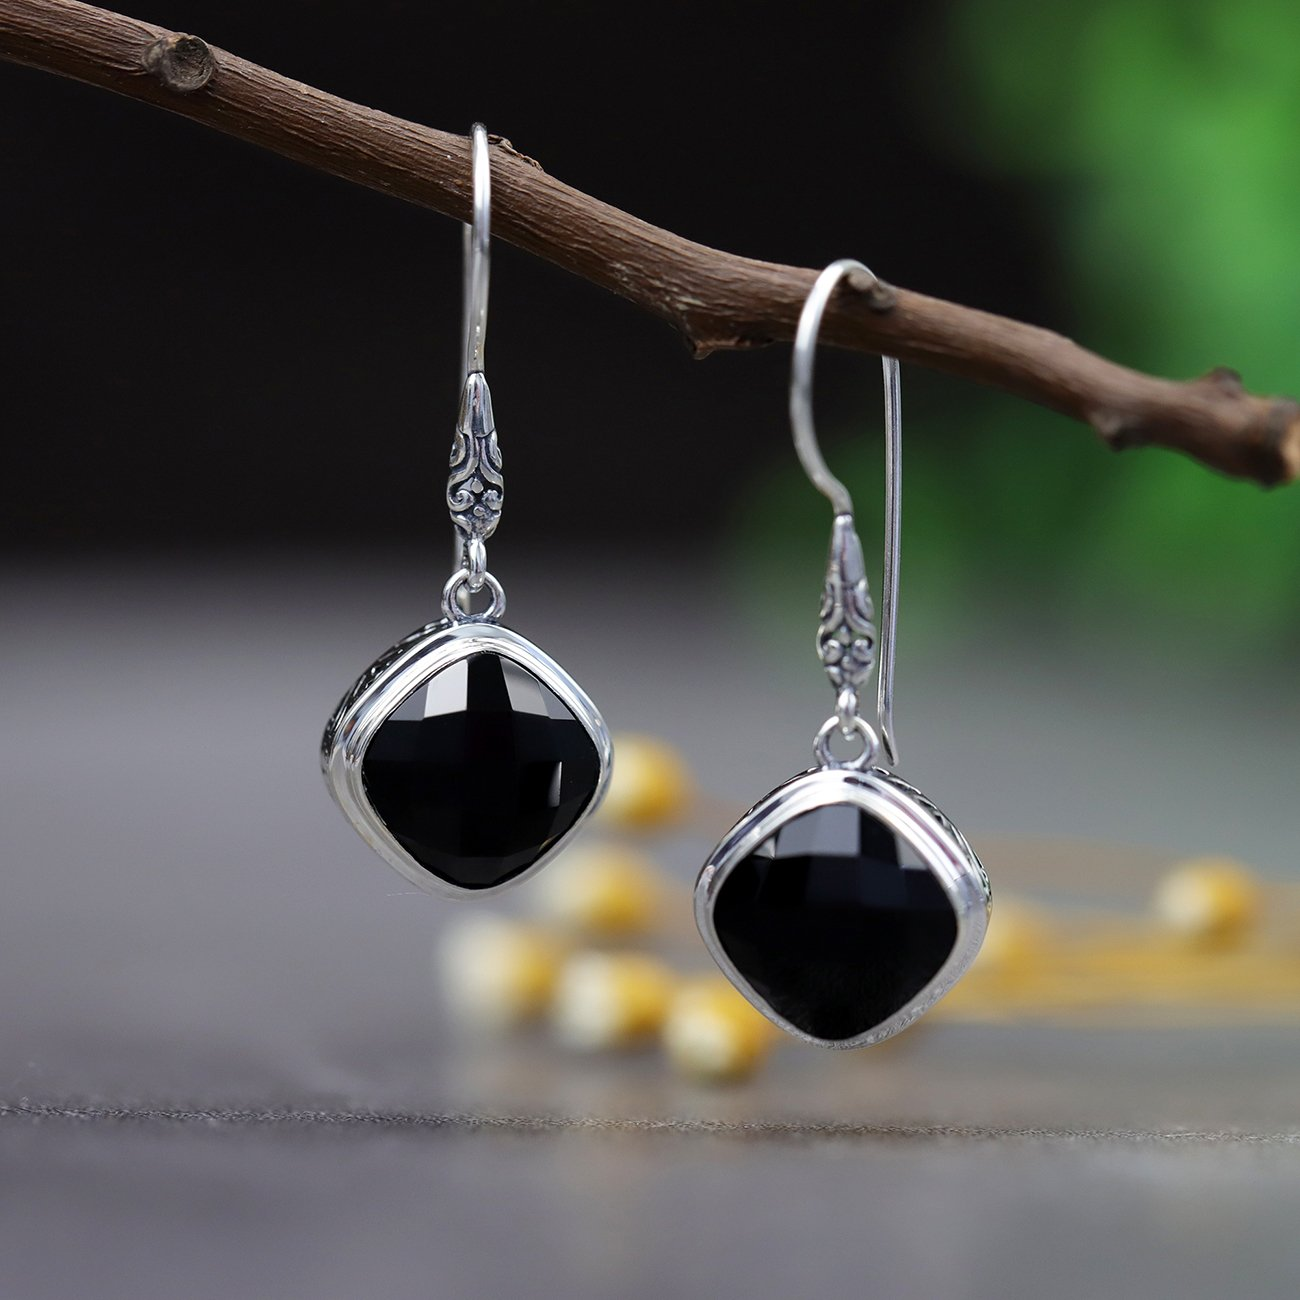 Delicate Black Agate Drop Earrings